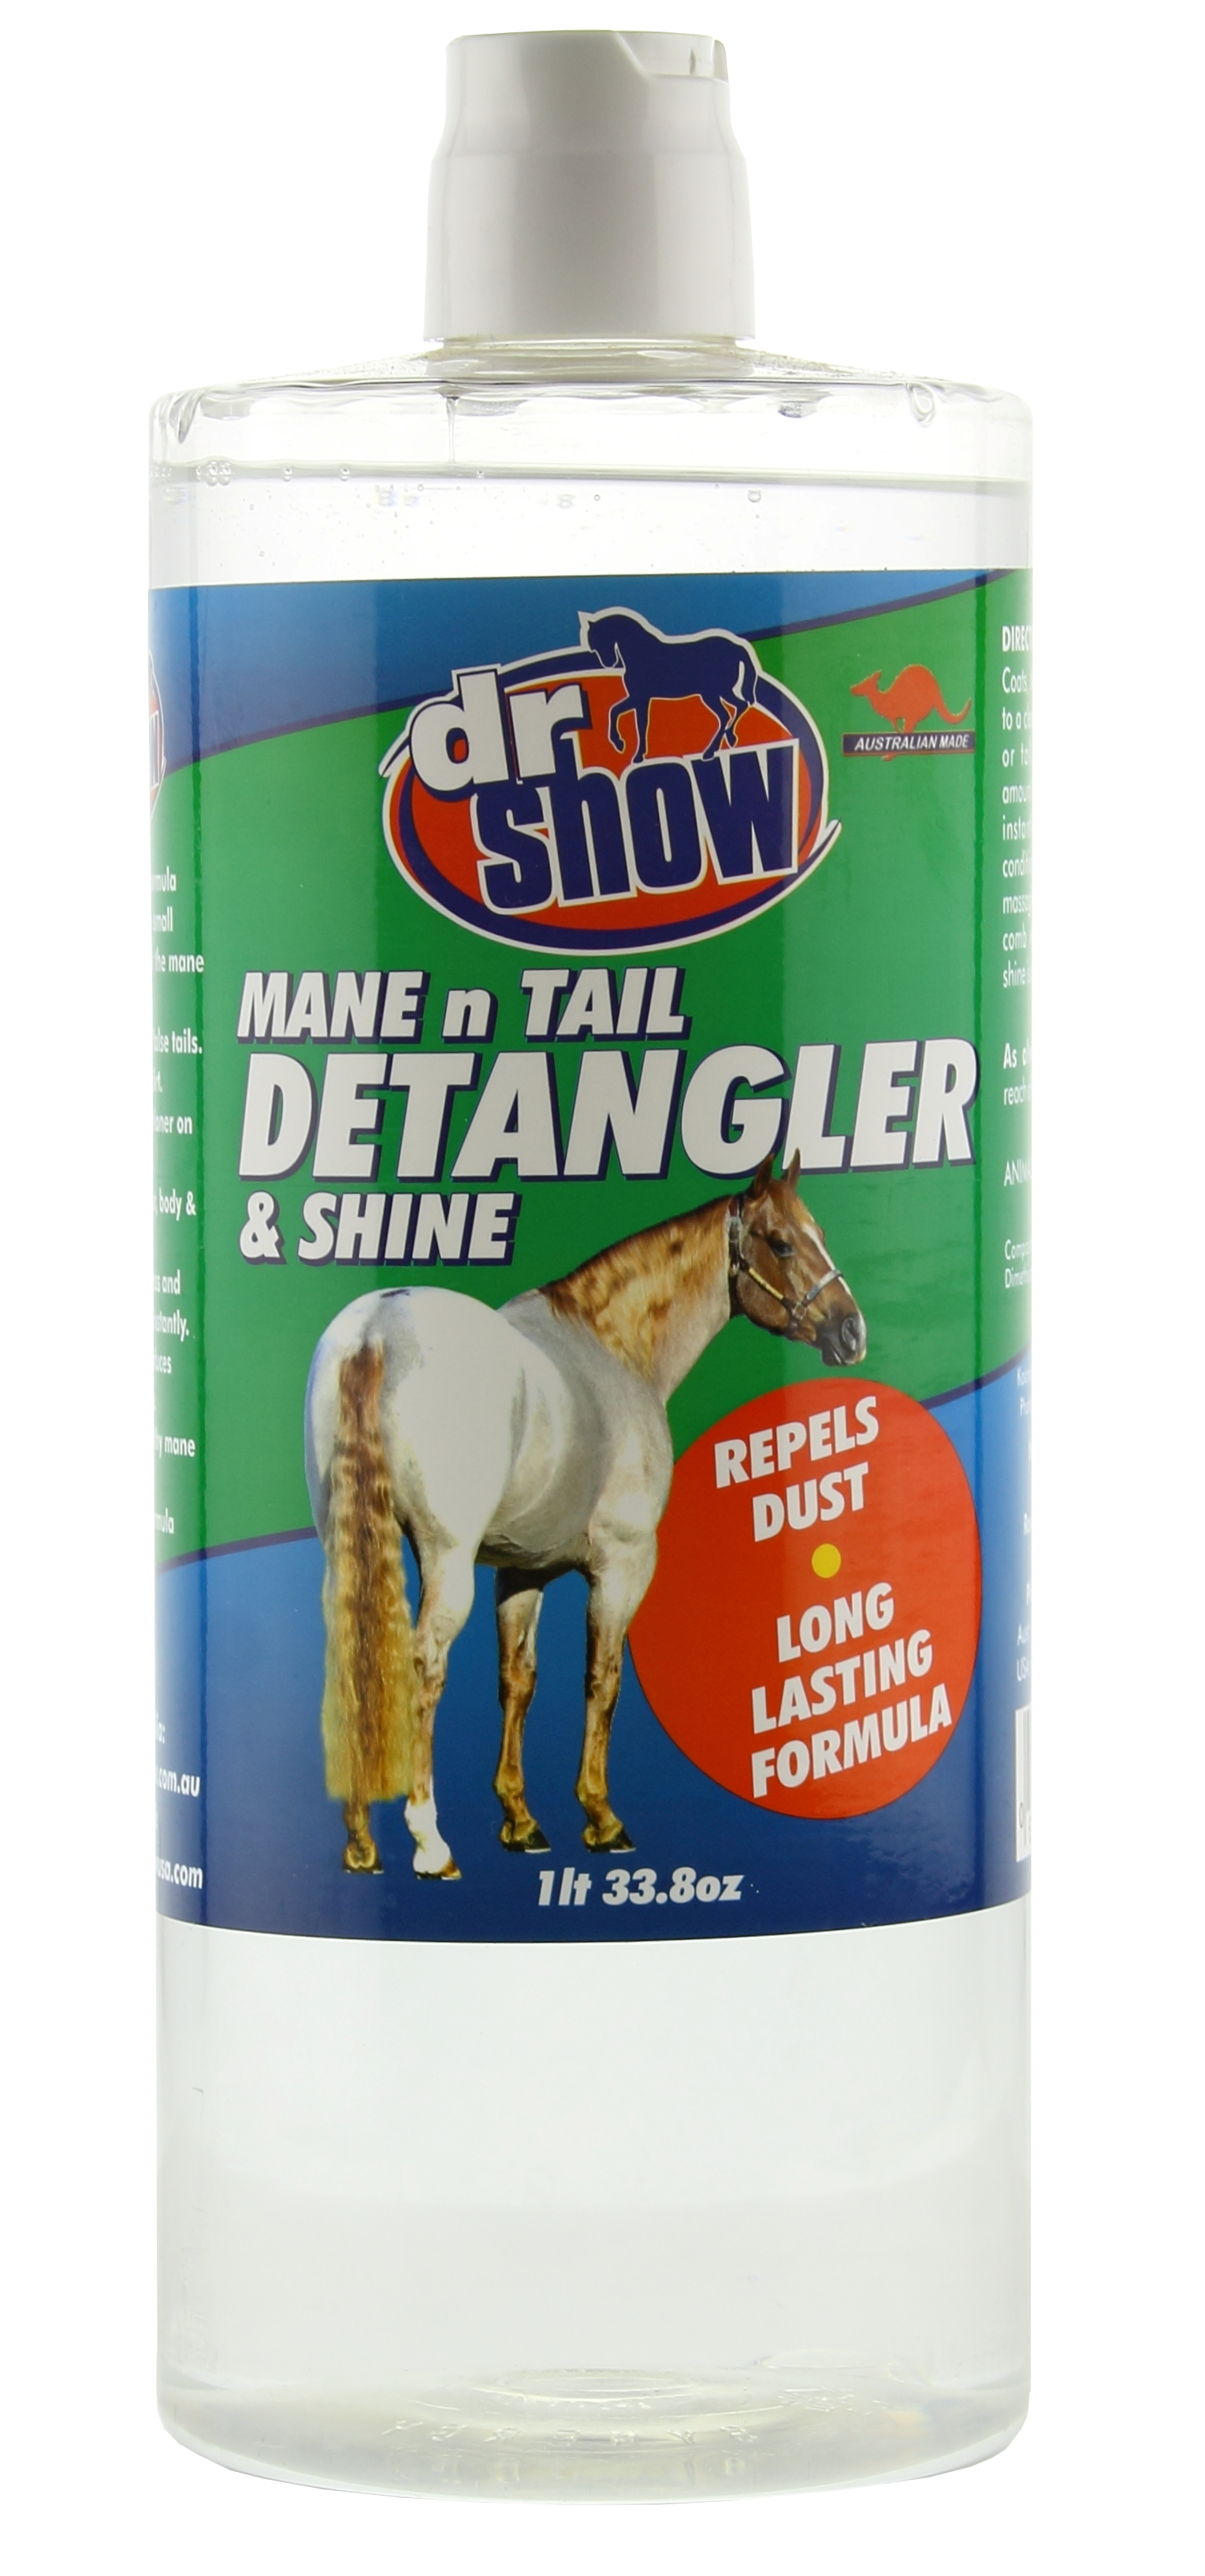 Dr Show Mane and Tail Detangler N Shine